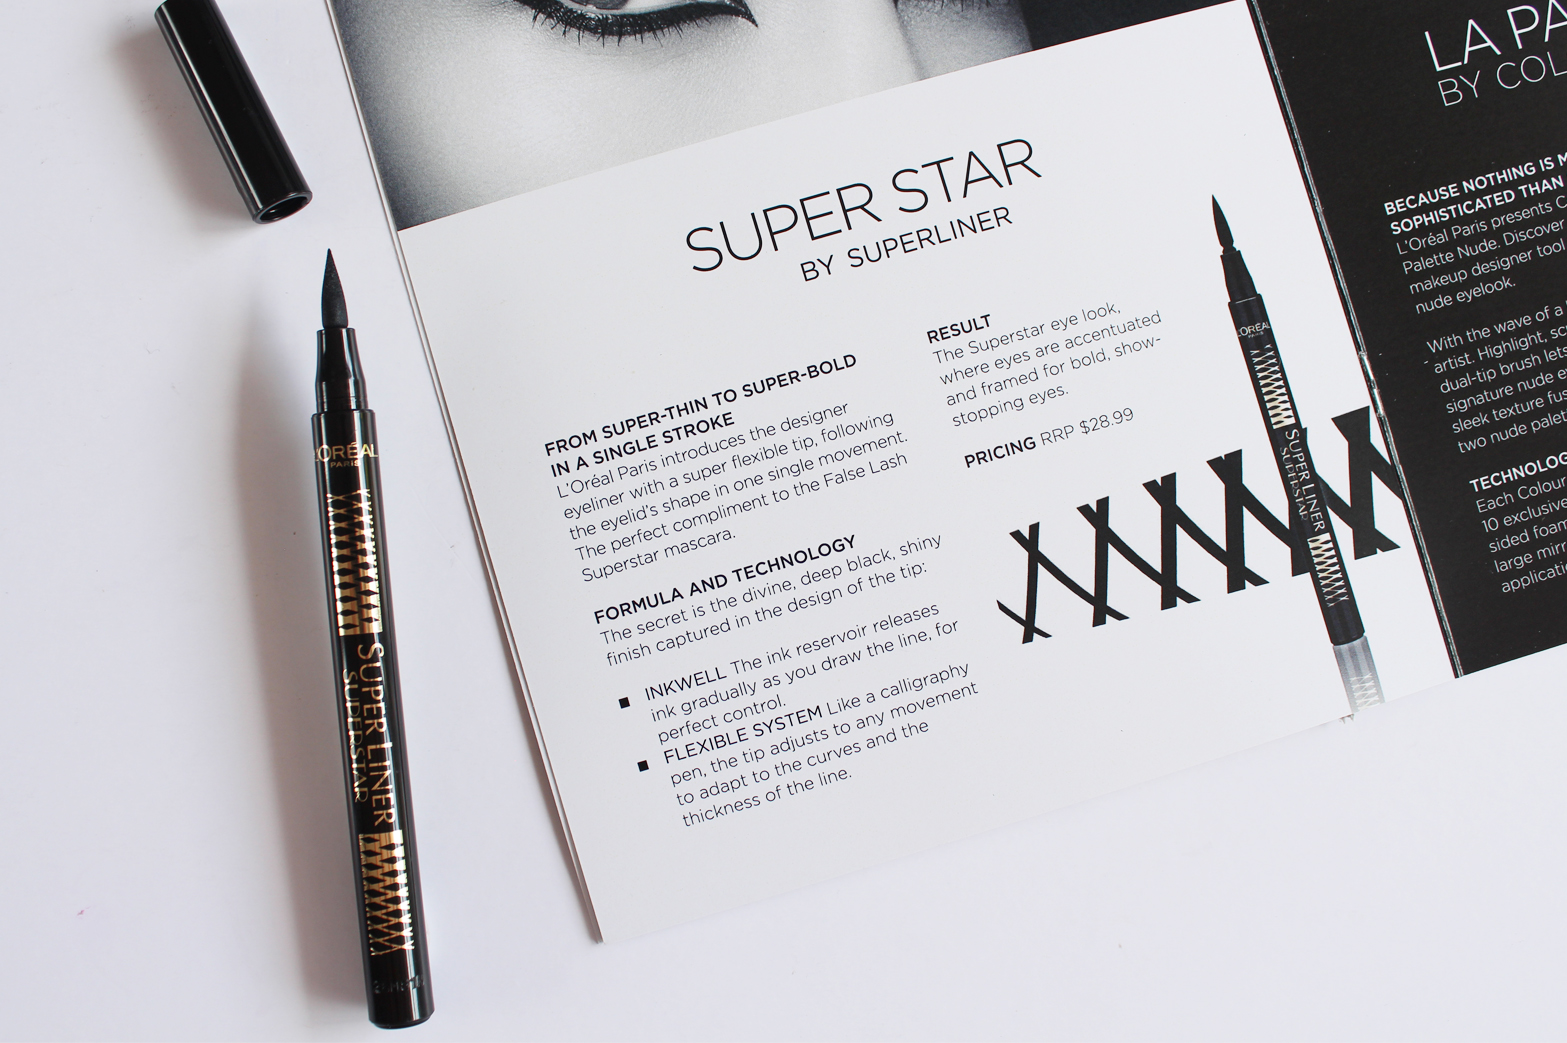 L'OREAL PARIS | New Releases New Zealand + Australia - Superliner Eye Liner, Matte FX, La Palette Nude + More - CassandraMyee